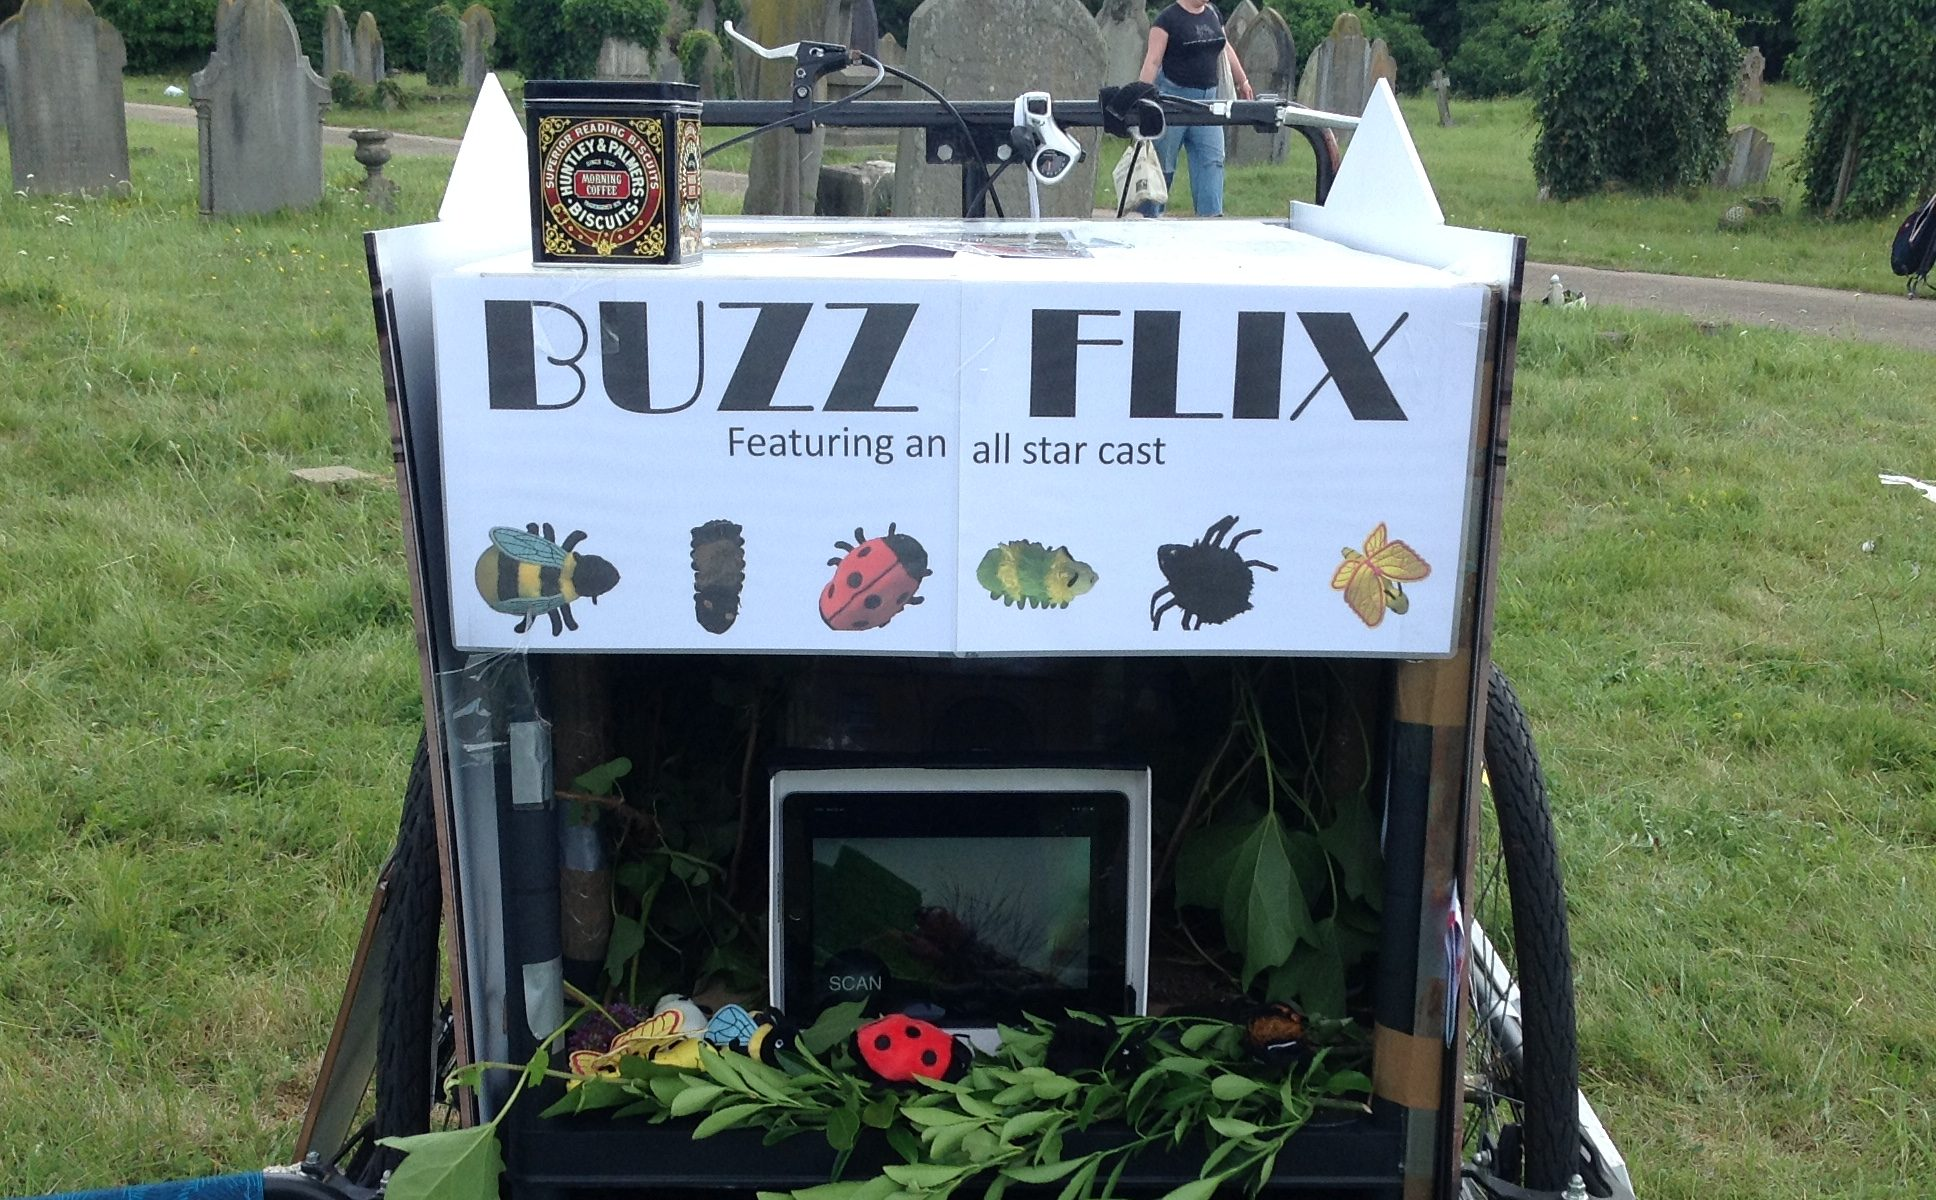 Tricycle being Buzz Flix